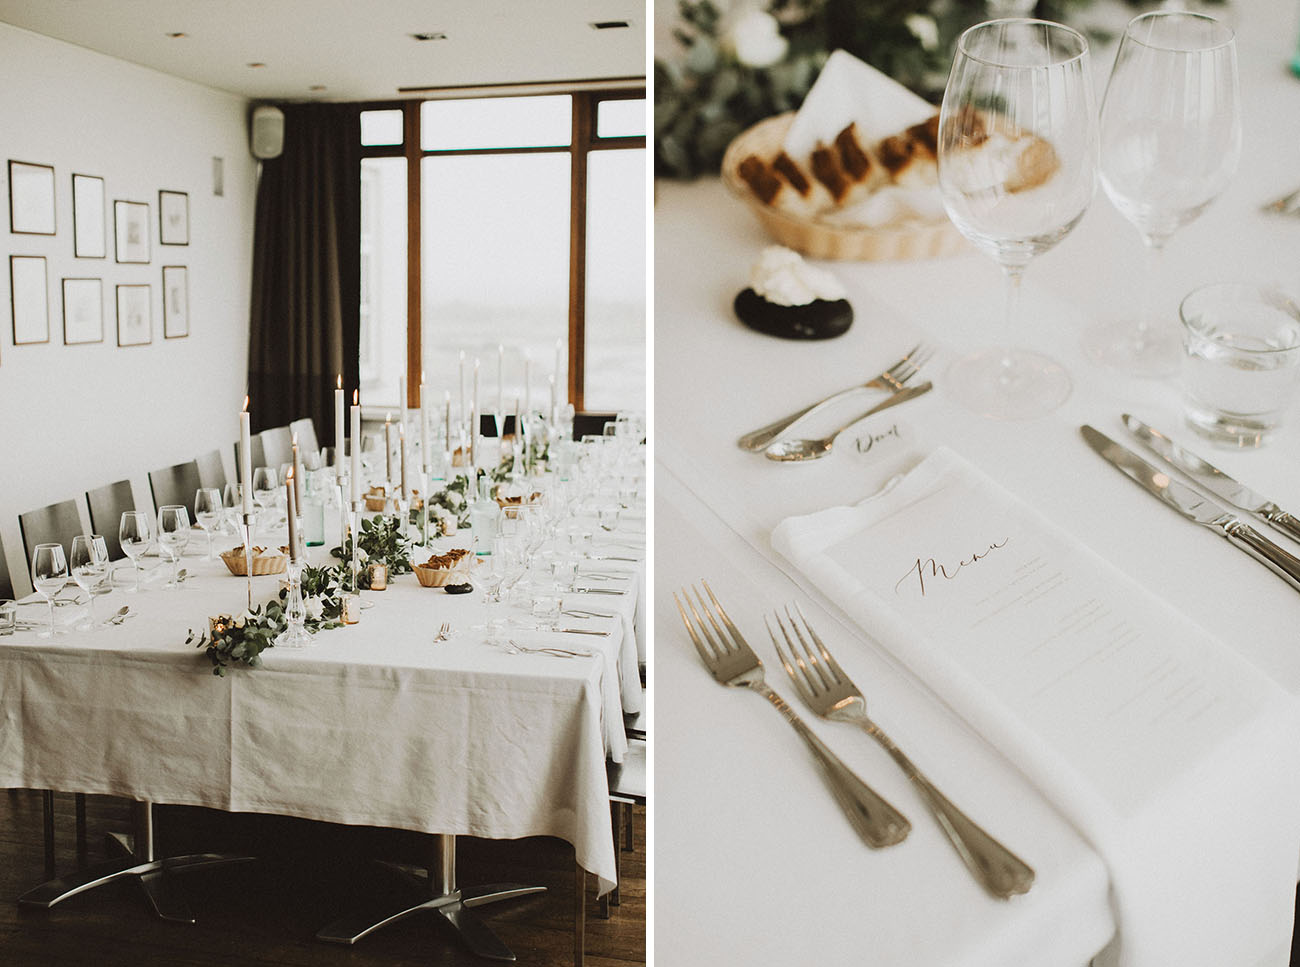 The wedding tablescape and decor were all minimalist, with simple greenery and some metallic touches